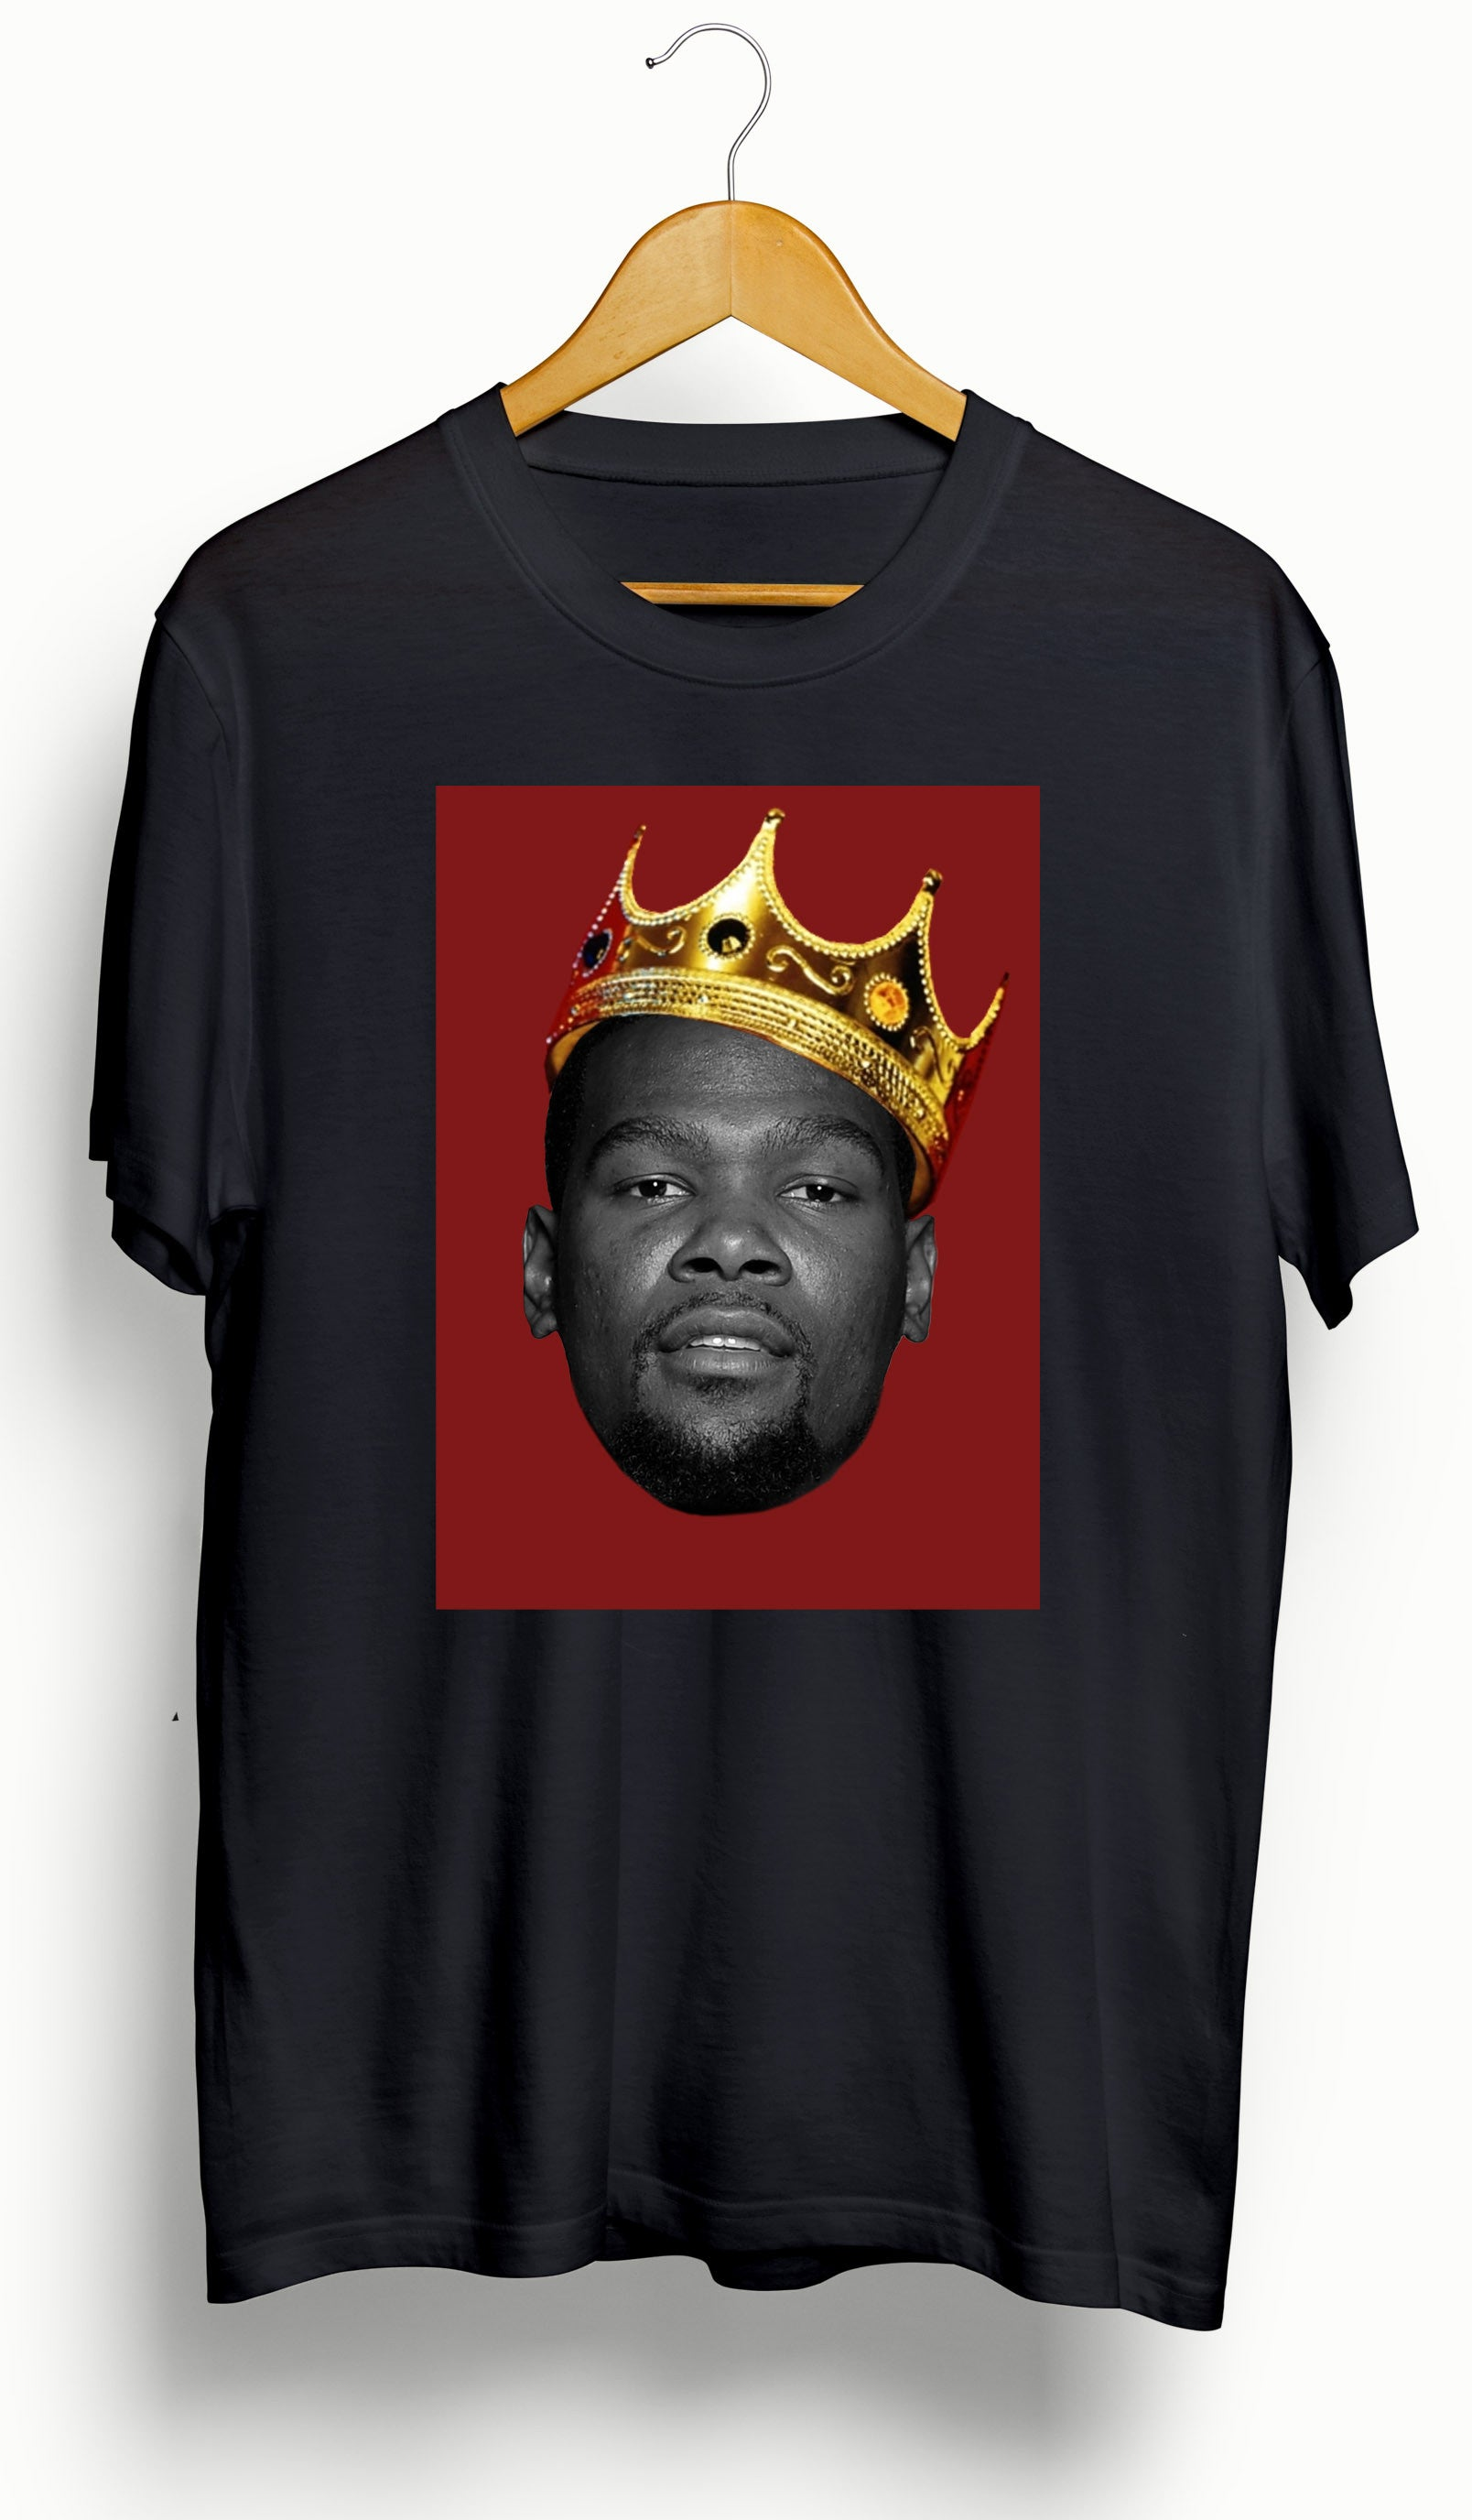 Kevin Durant/KD/Golden State Warriors/Biggie King T-Shirt